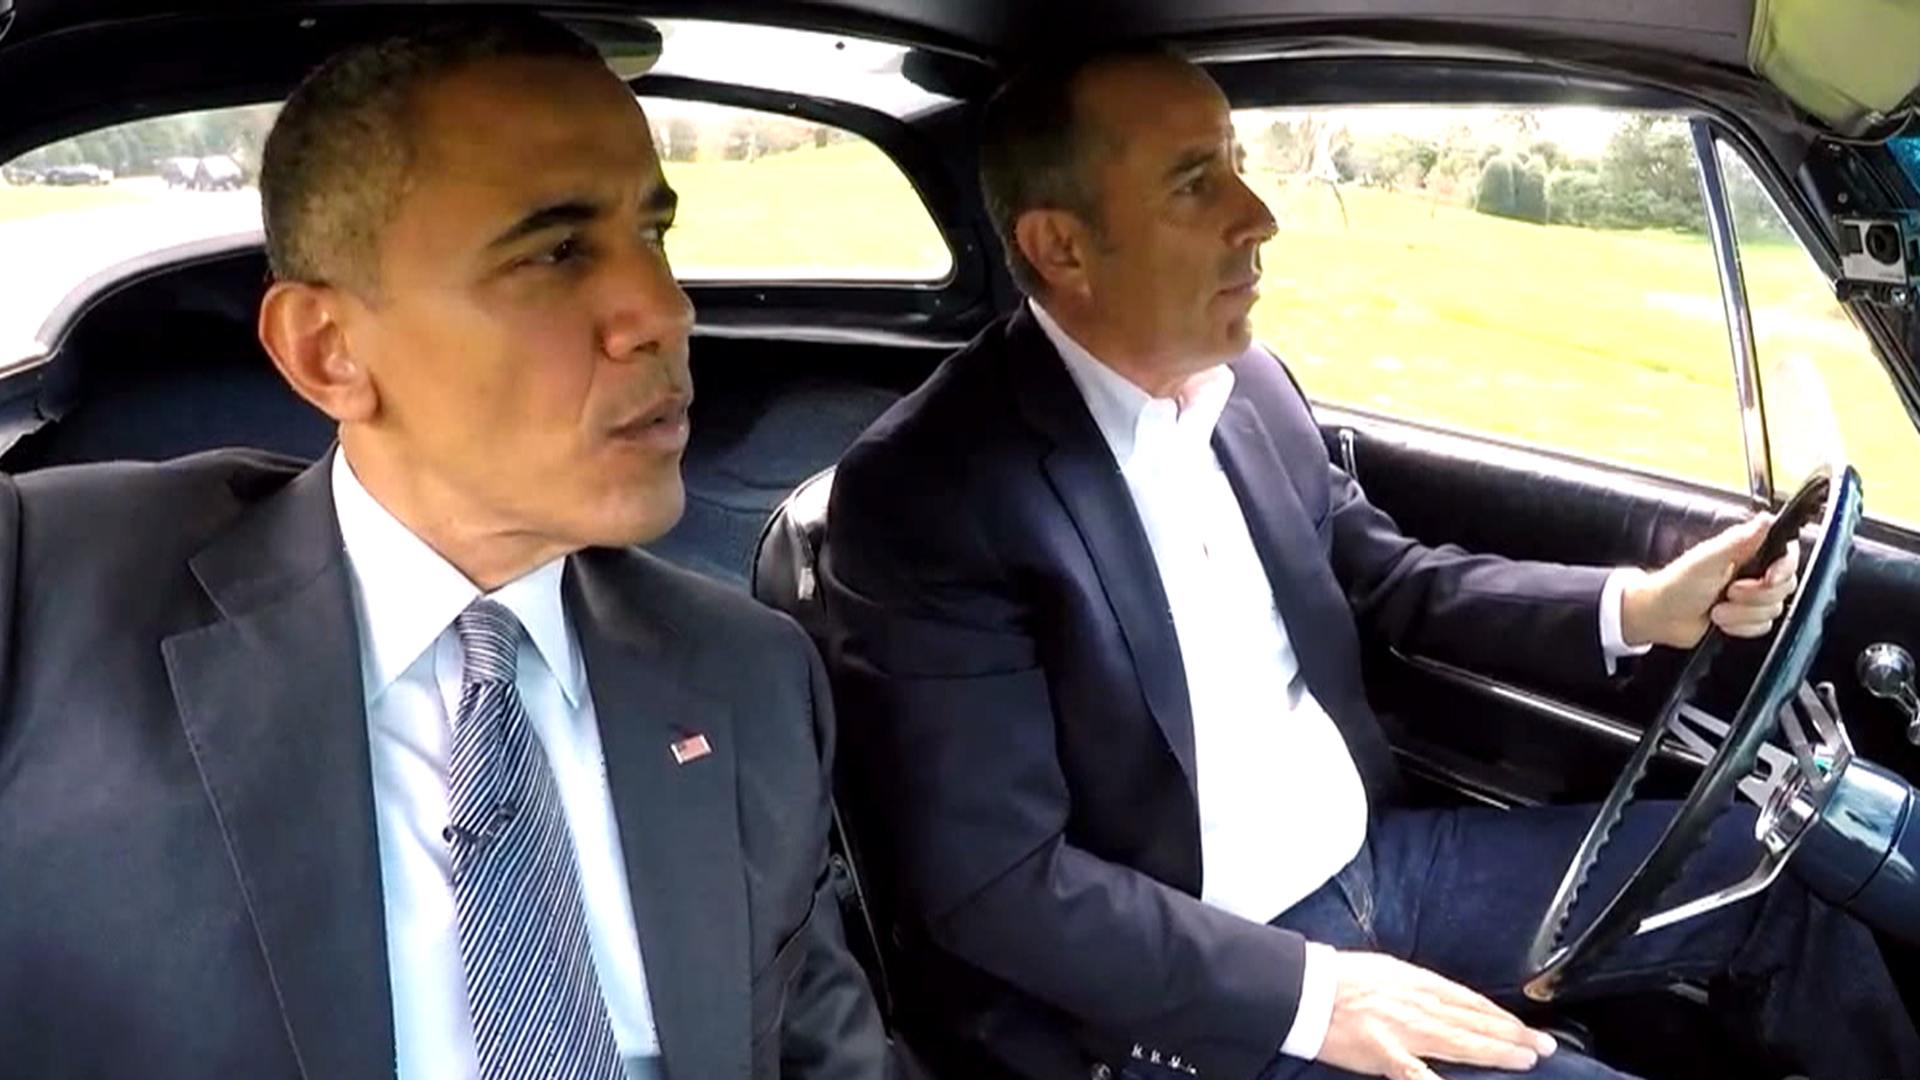 Obama Goes Out (Sort of) for Coffee with Jerry Seinfeld